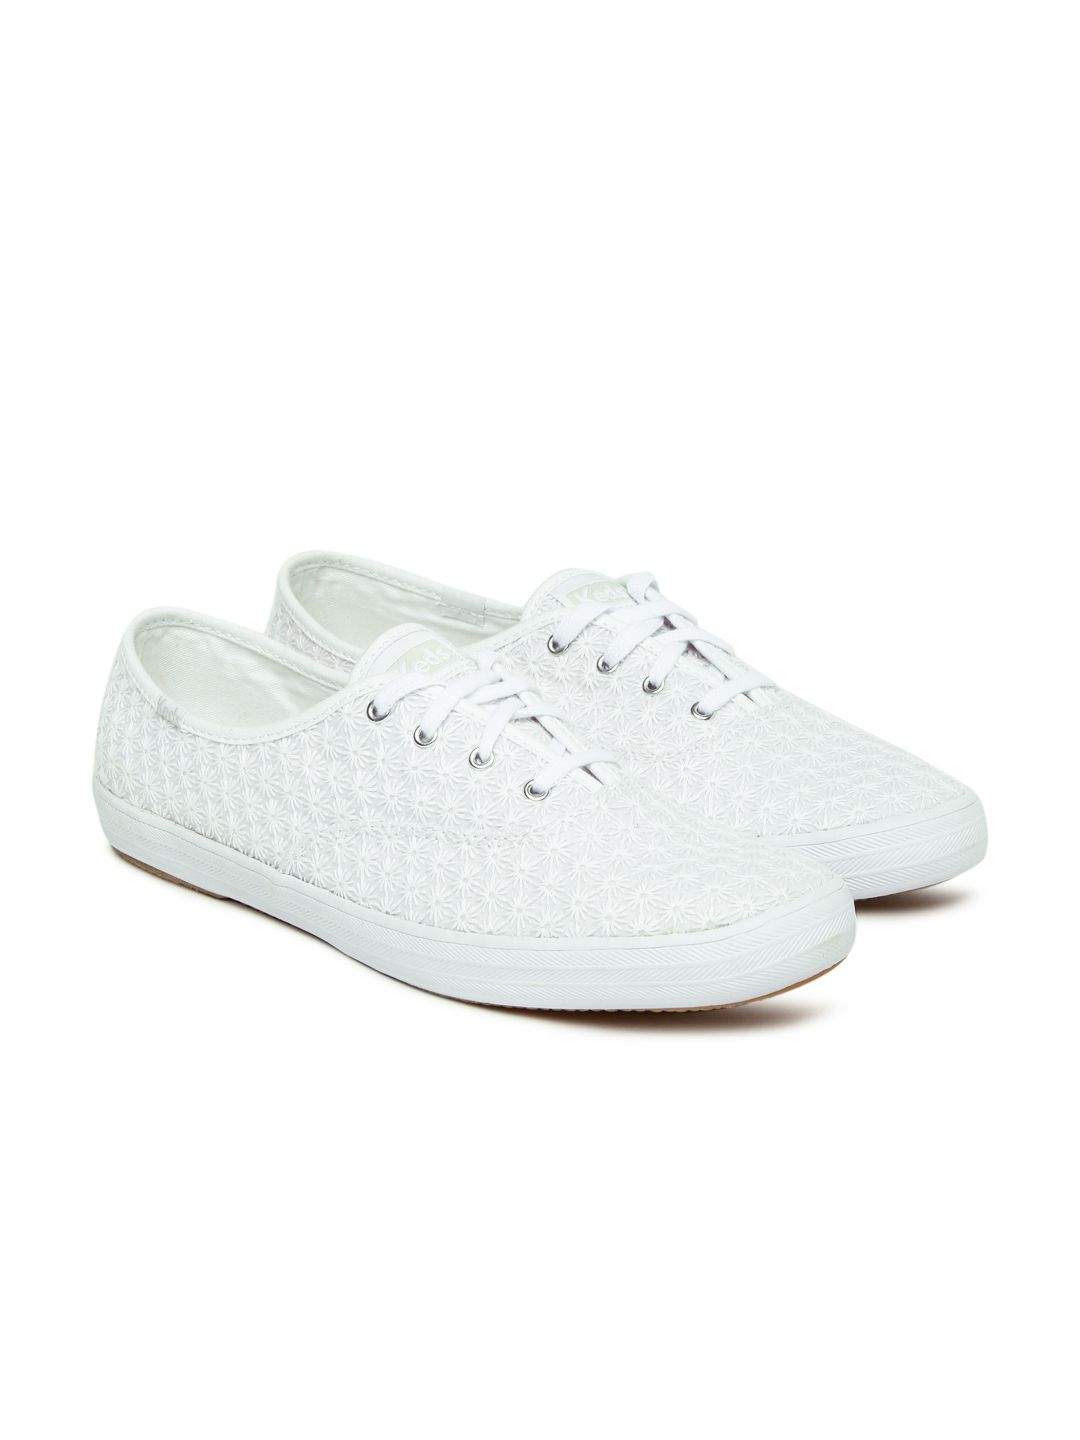 1e3bc7cb77c0 Keds White Casual Shoes Price in India- Buy Keds White Casual Shoes Online  at Snapdeal